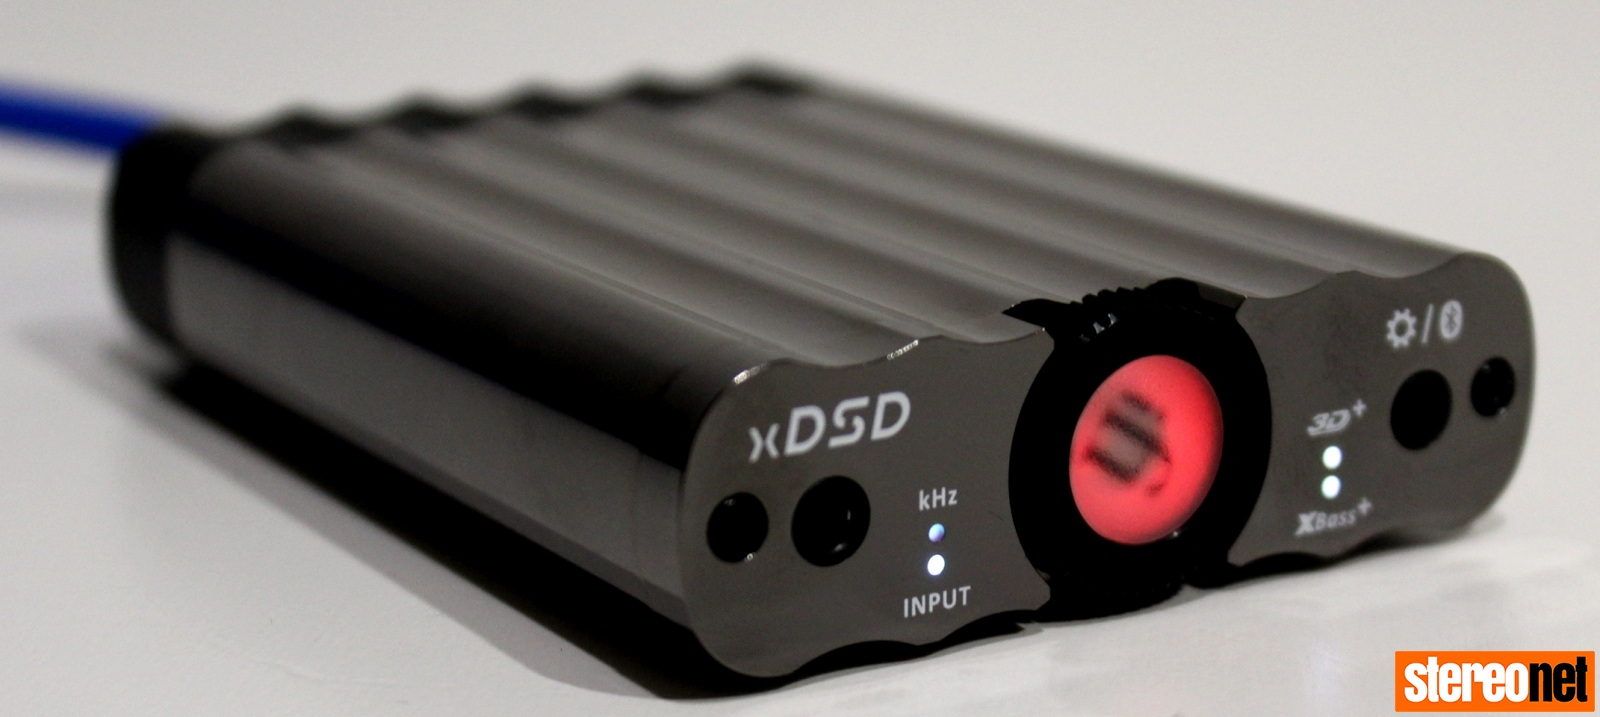 iFi xDSD Review